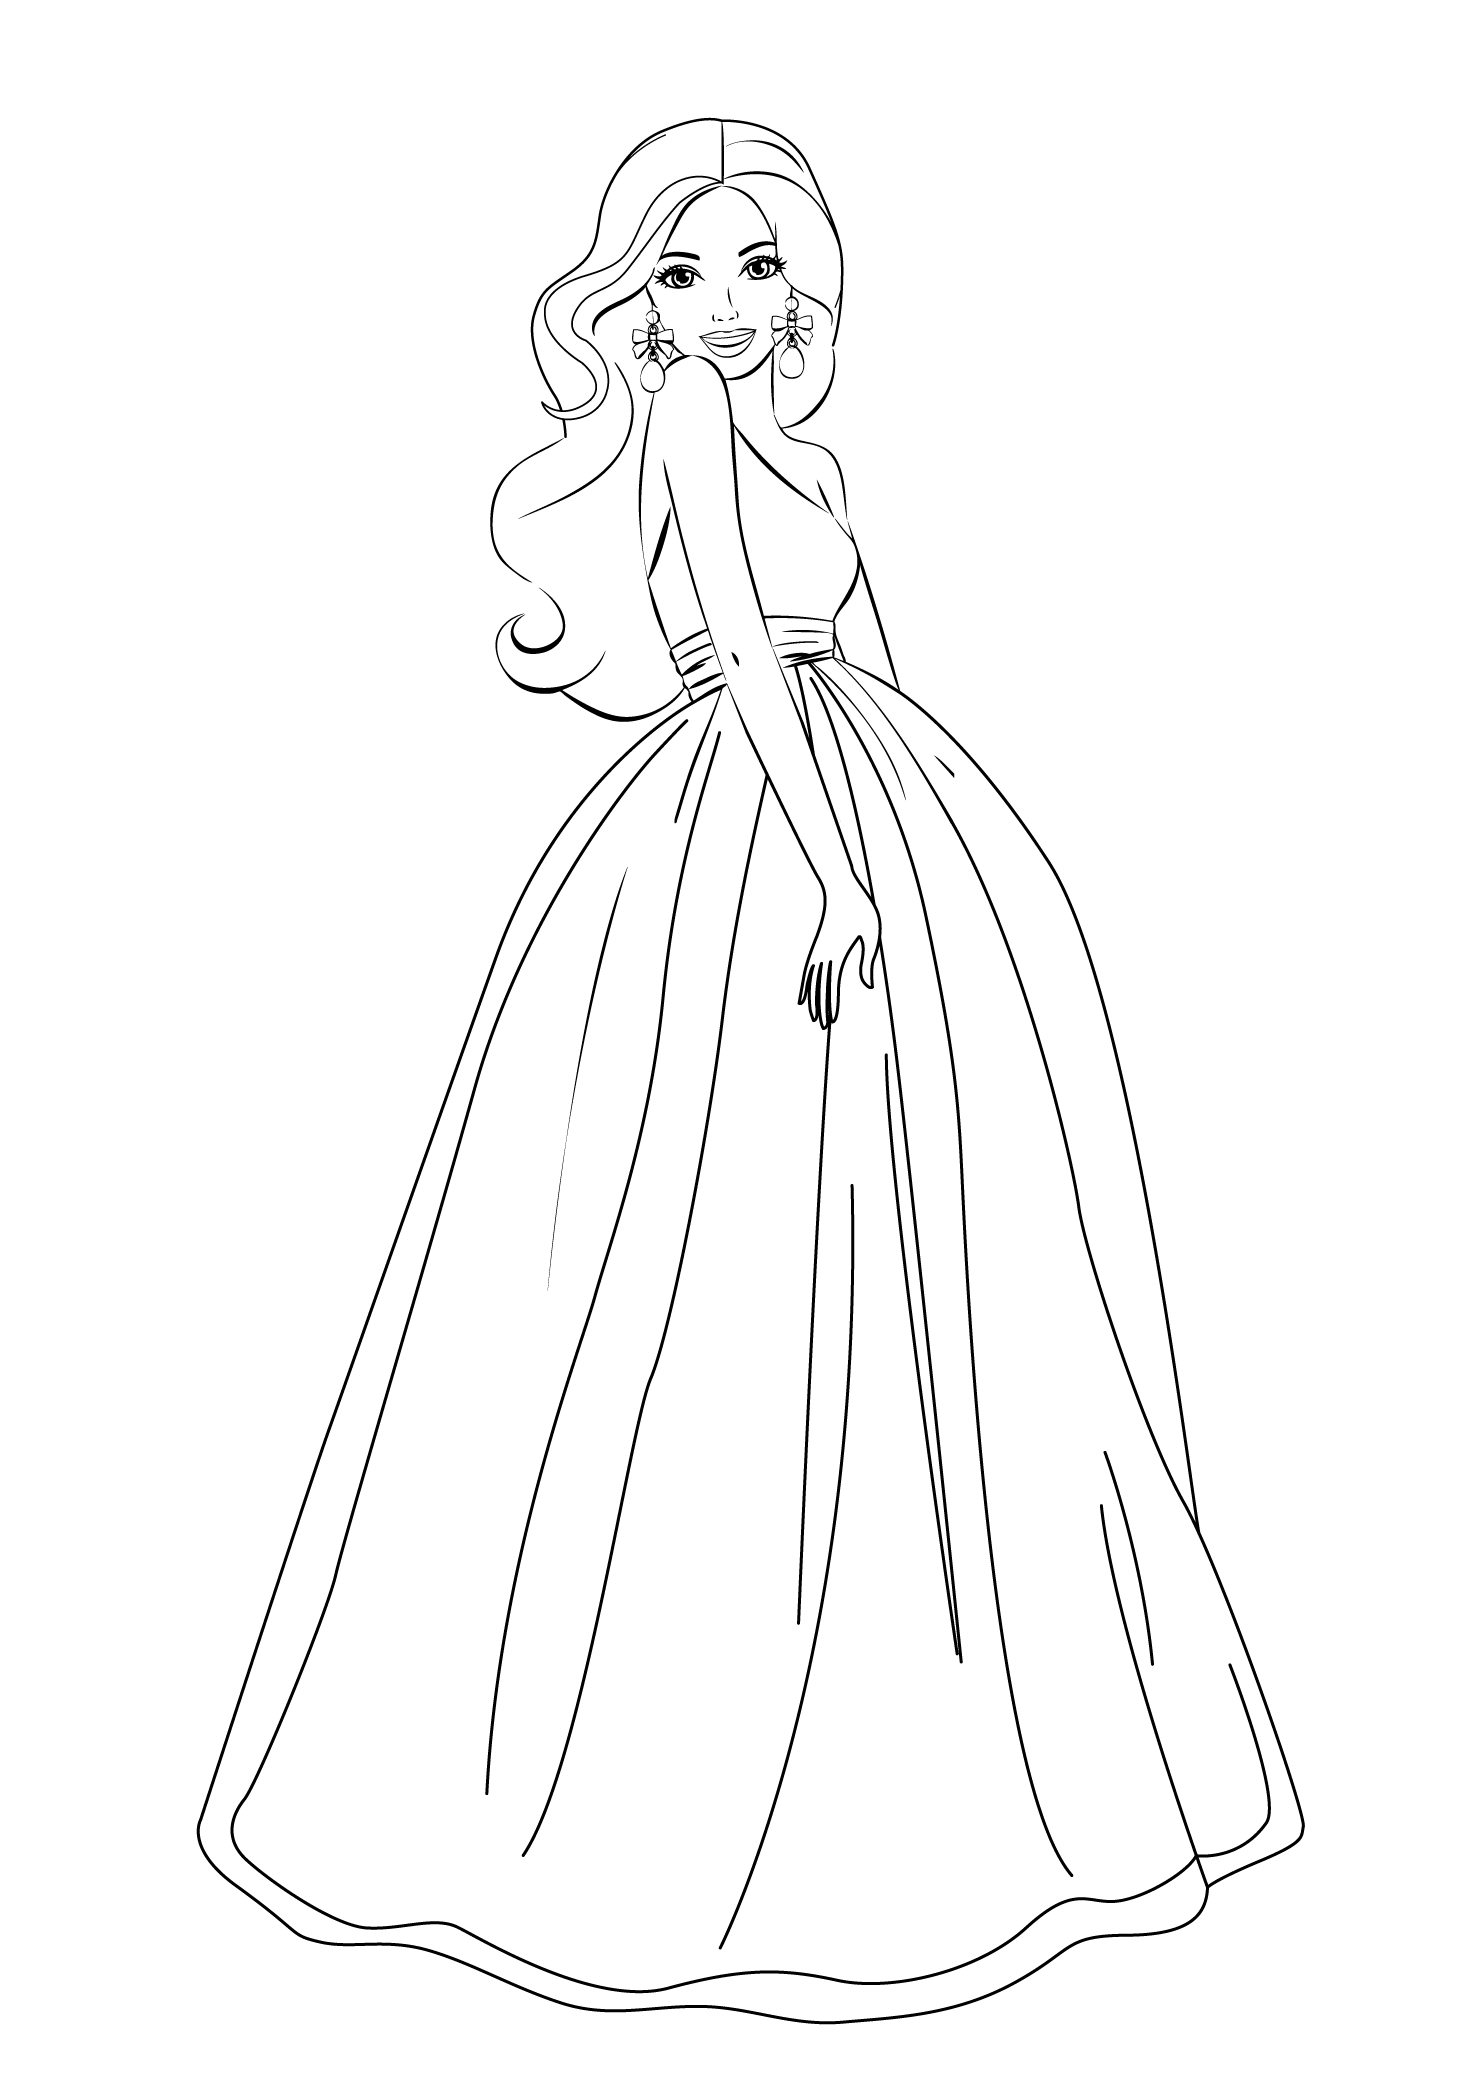 Barbie Rapunzel Ausmalbilder : Barbie Coloring Pages For Girls Free Printable Barbie Pinterest